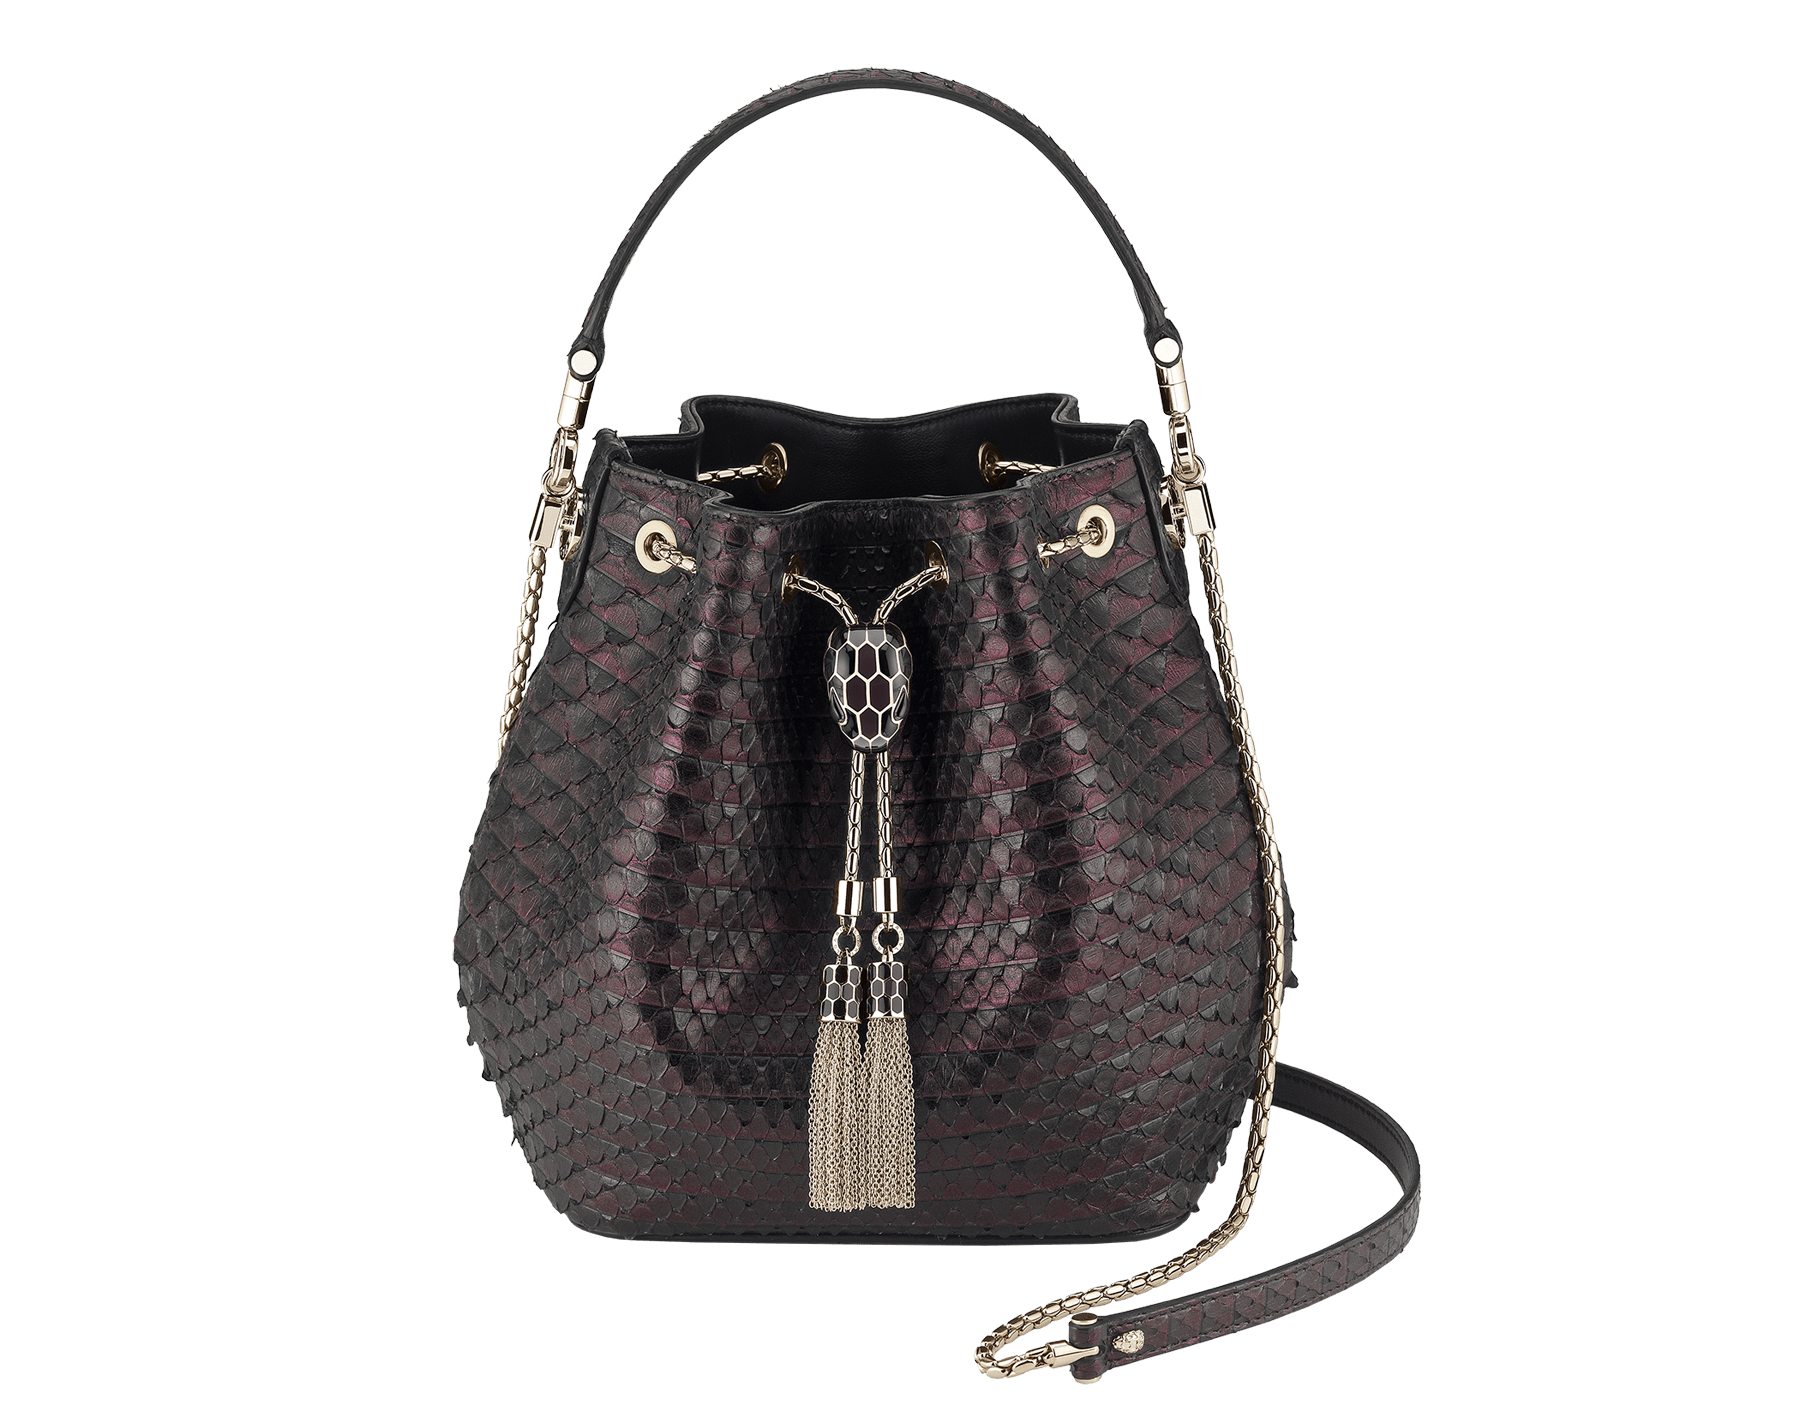 Bucket Serpenti Forever in plum amethyst Plissé python skin and black nappa internal lining. Hardware in light gold plated brass and snakehead closure in black and plum amethyst enamel, with eyes in black onyx. 934-PP image 1